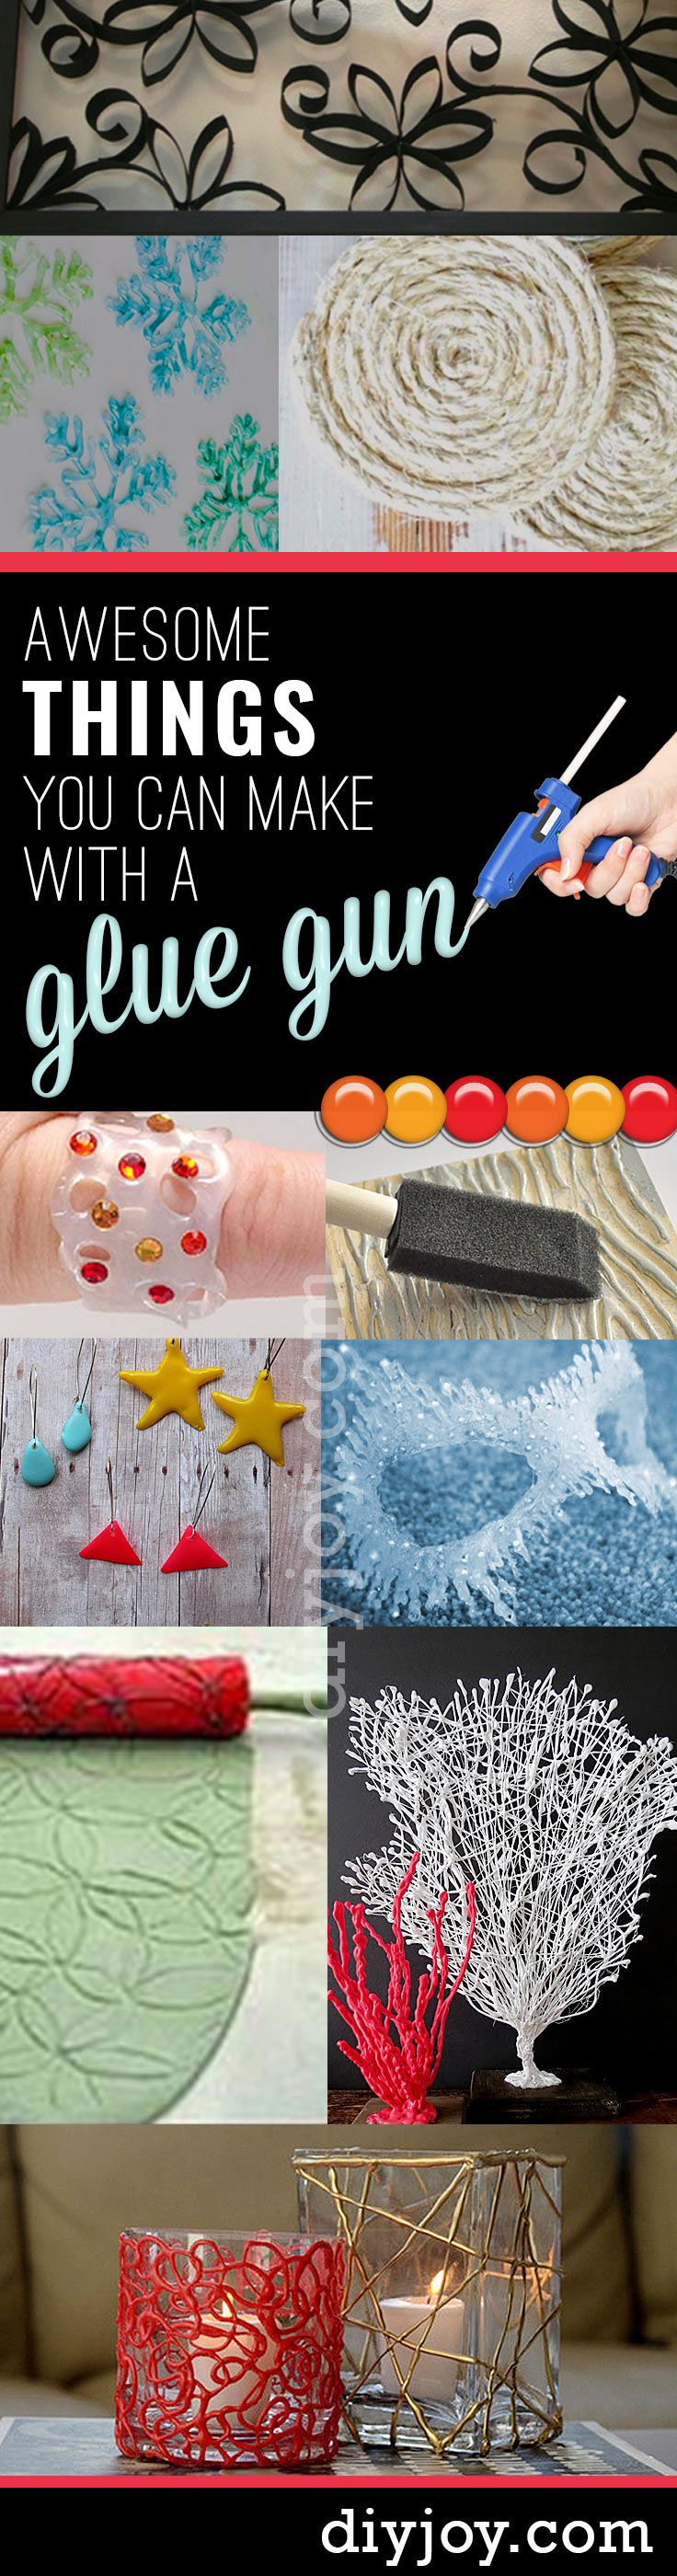 Best 25 arts and crafts ideas on pinterest projects for for Best glue for crafts